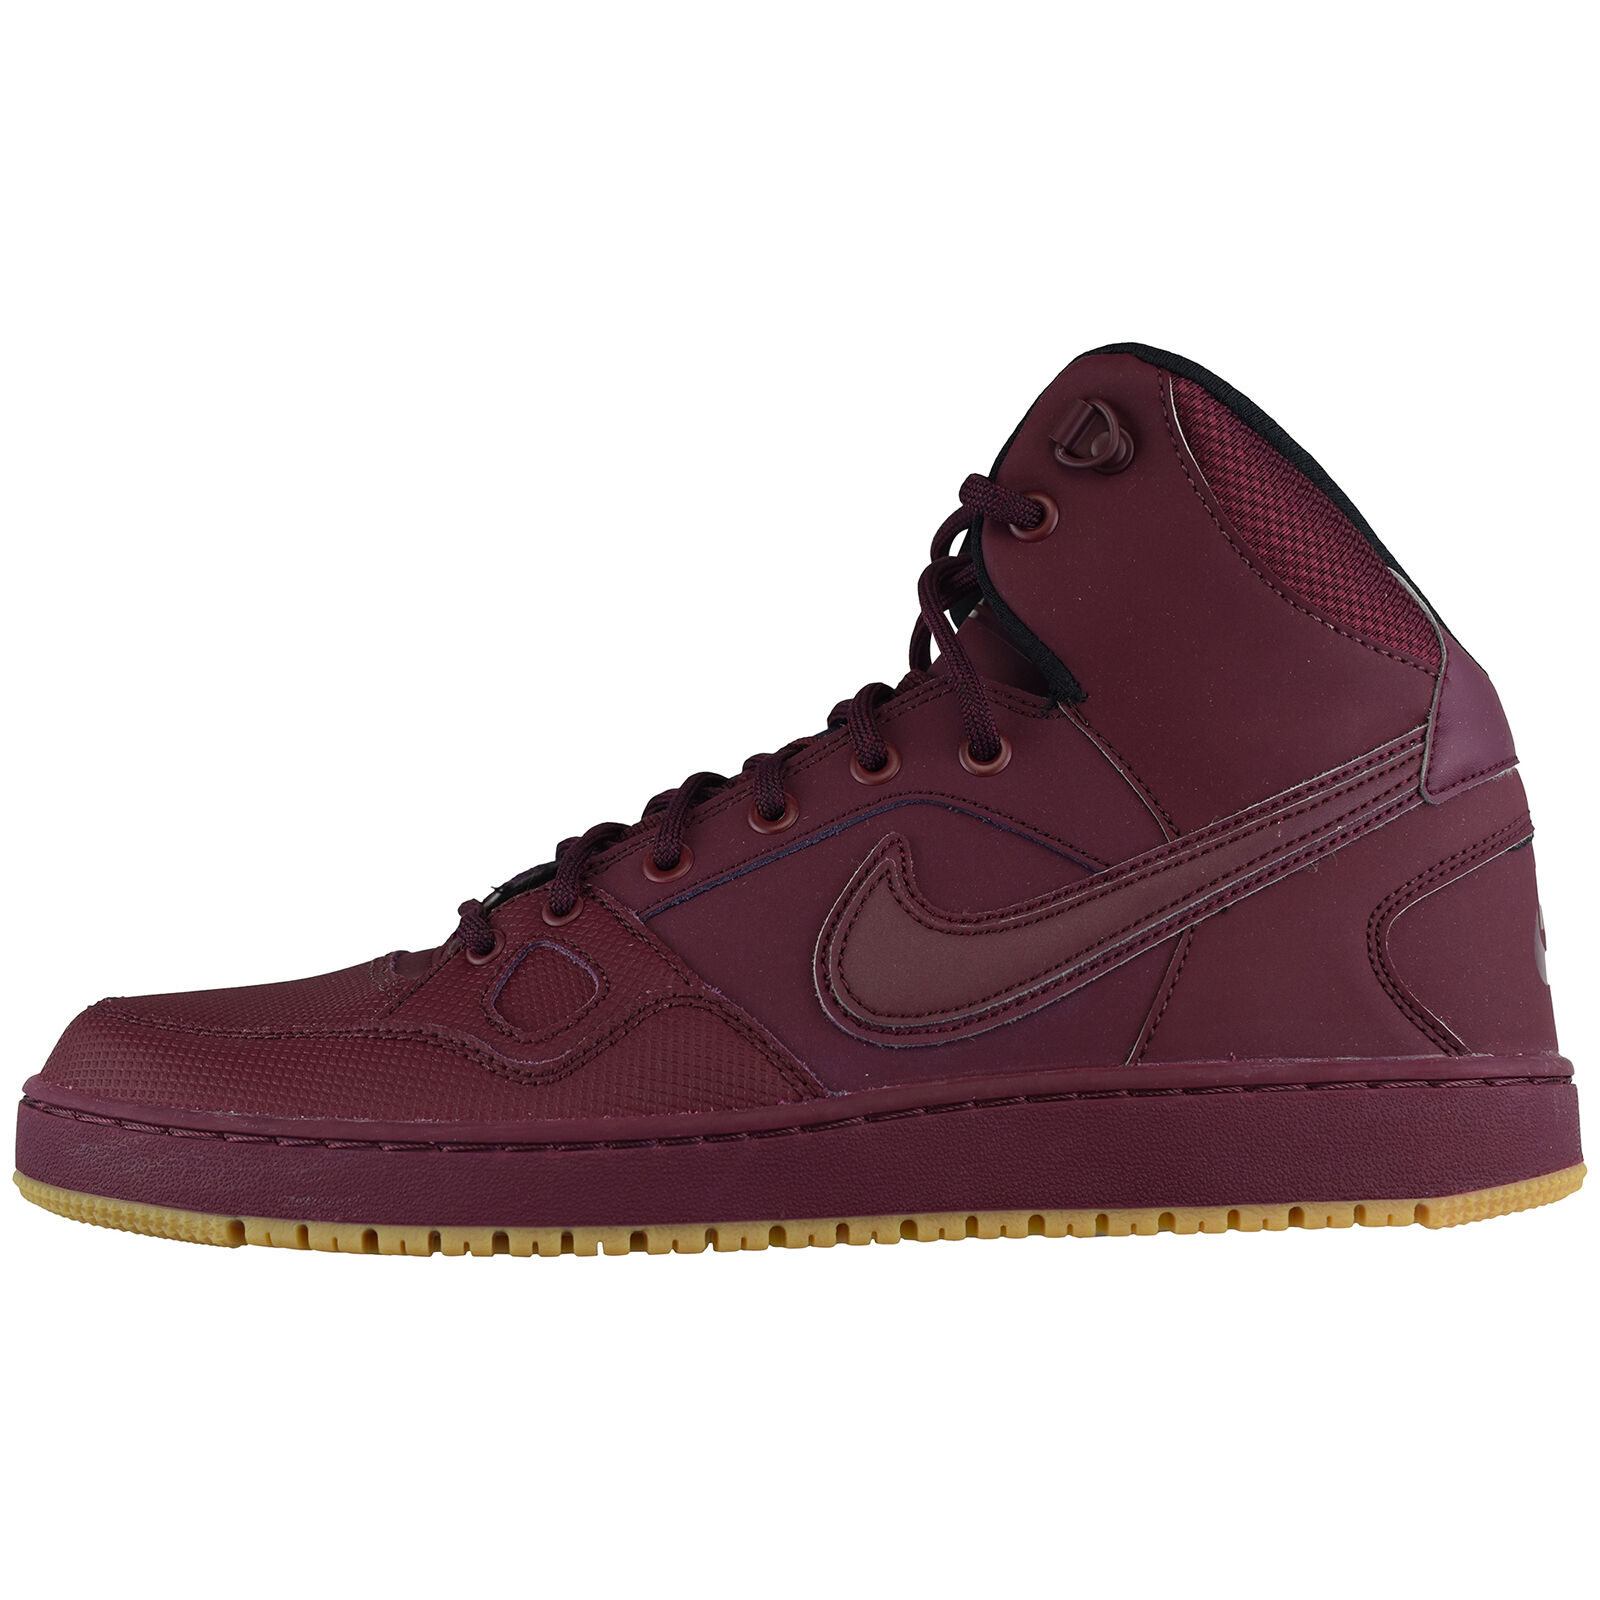 Nike FIGLIO MEDIA Force Inverno 807242-600 LIFESTYLE PELLE SNEAKER SCARPE Seasonal clearance sale